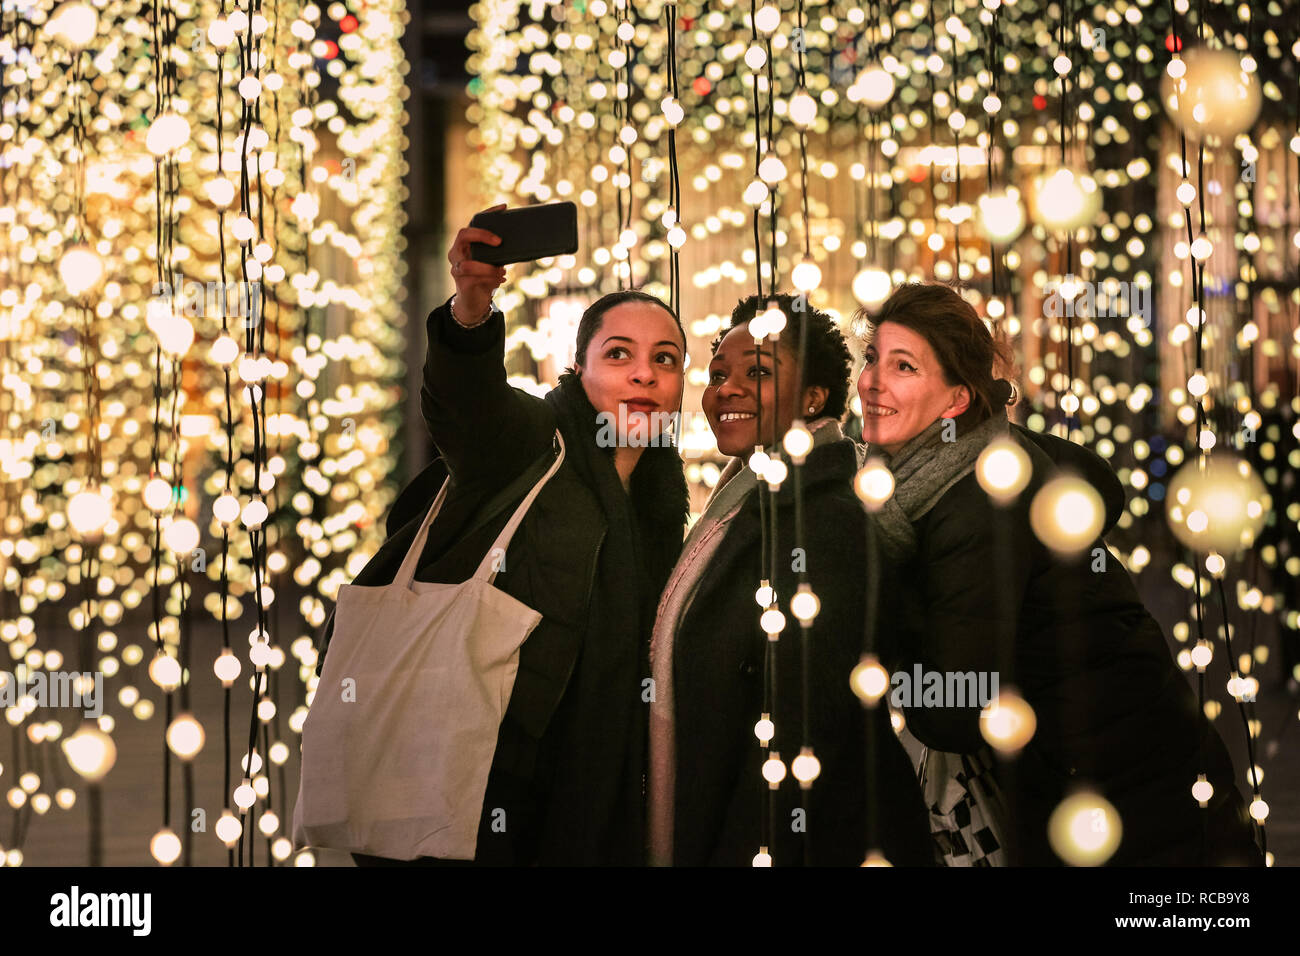 Canary Wharf, London, UK, 14th Jan 2019. People interact with and take selfies with the 'Submergence' installation, a large work incorporating strings of hanging lights by arts collective Squidsoup. The colourful Canary Wharf Winter Lights installations once again open to public viewing and interactive fun in and around Canary Wharf from Jan 15th until Jan 26th. Credit: Imageplotter News and Sports/Alamy Live News - Stock Image